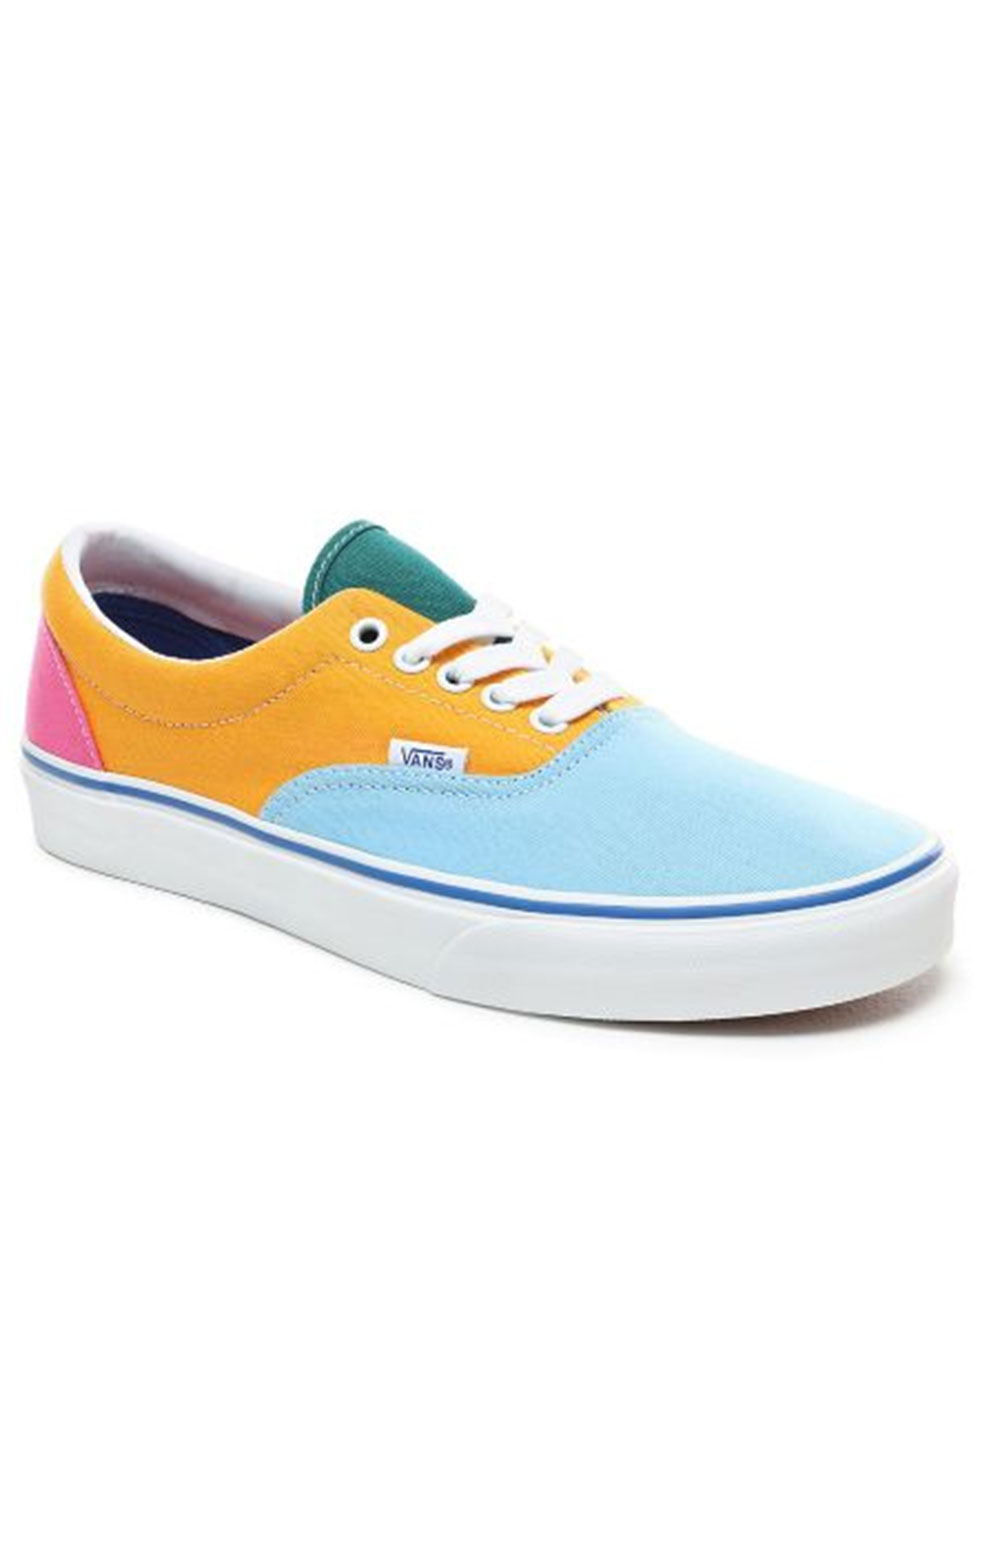 (8FRVOP) Canvas Era Shoe - Multi/Bright 4